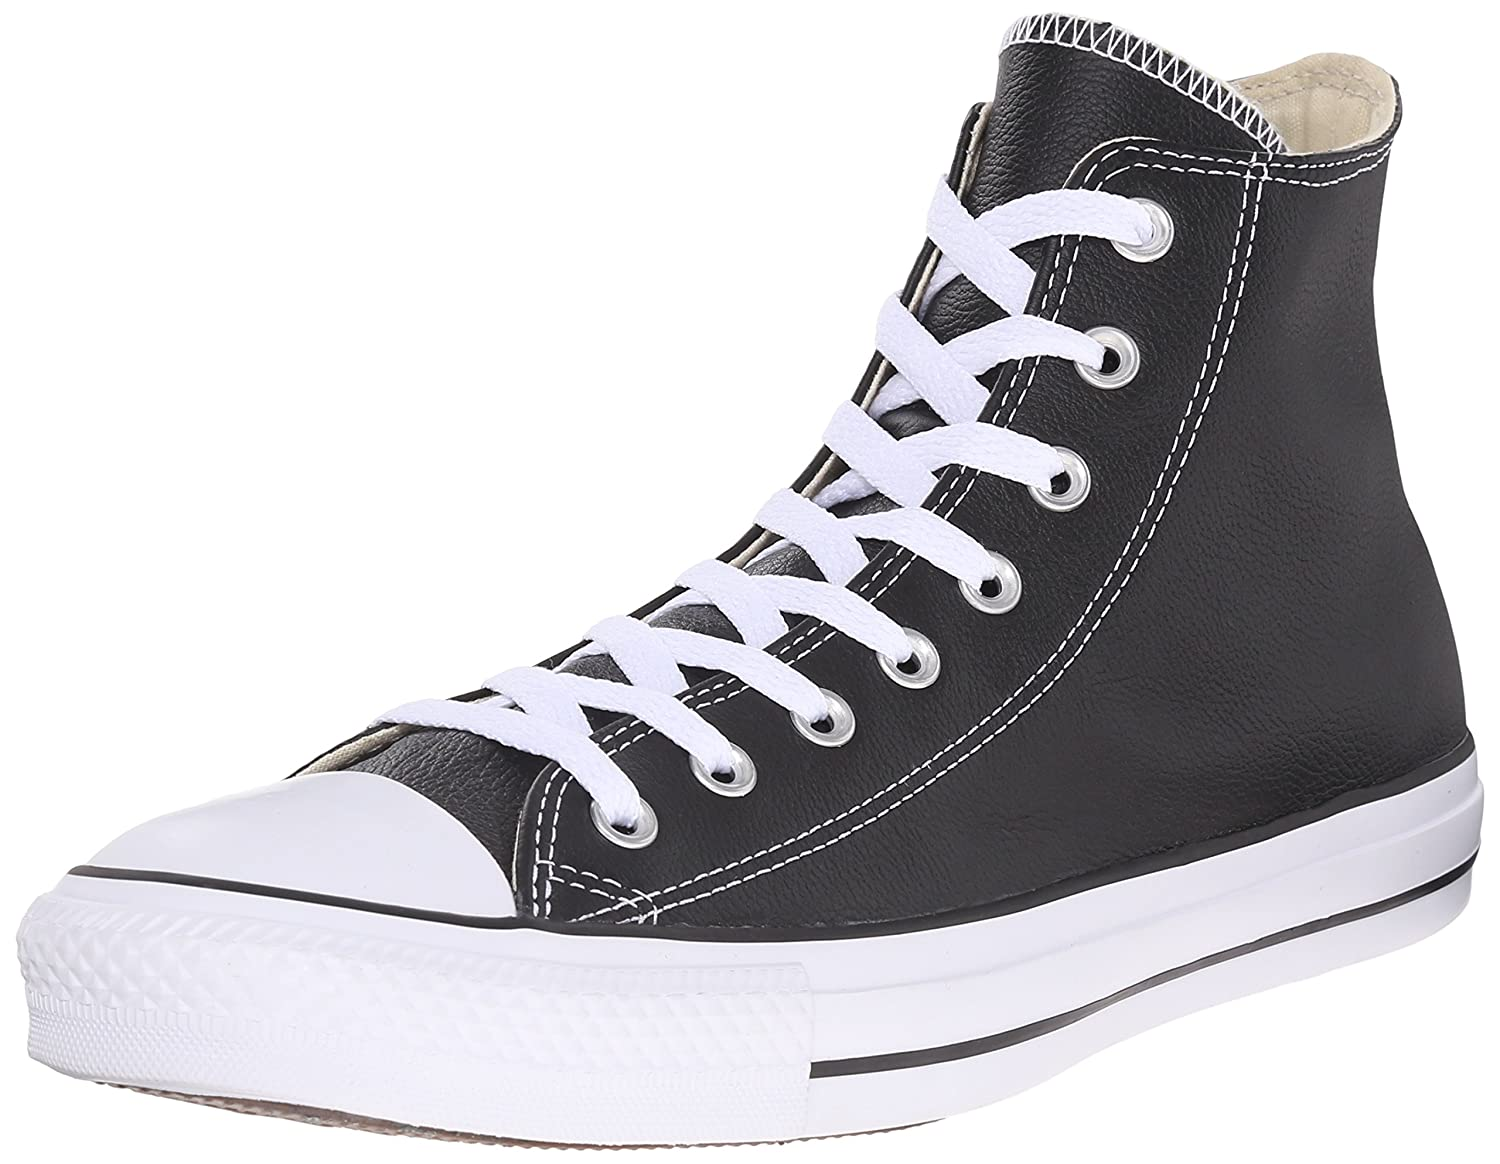 Converse Chuck Taylor All Star Leather High Top Sneaker B008U83LGE 5 B(M) US|Black Leather